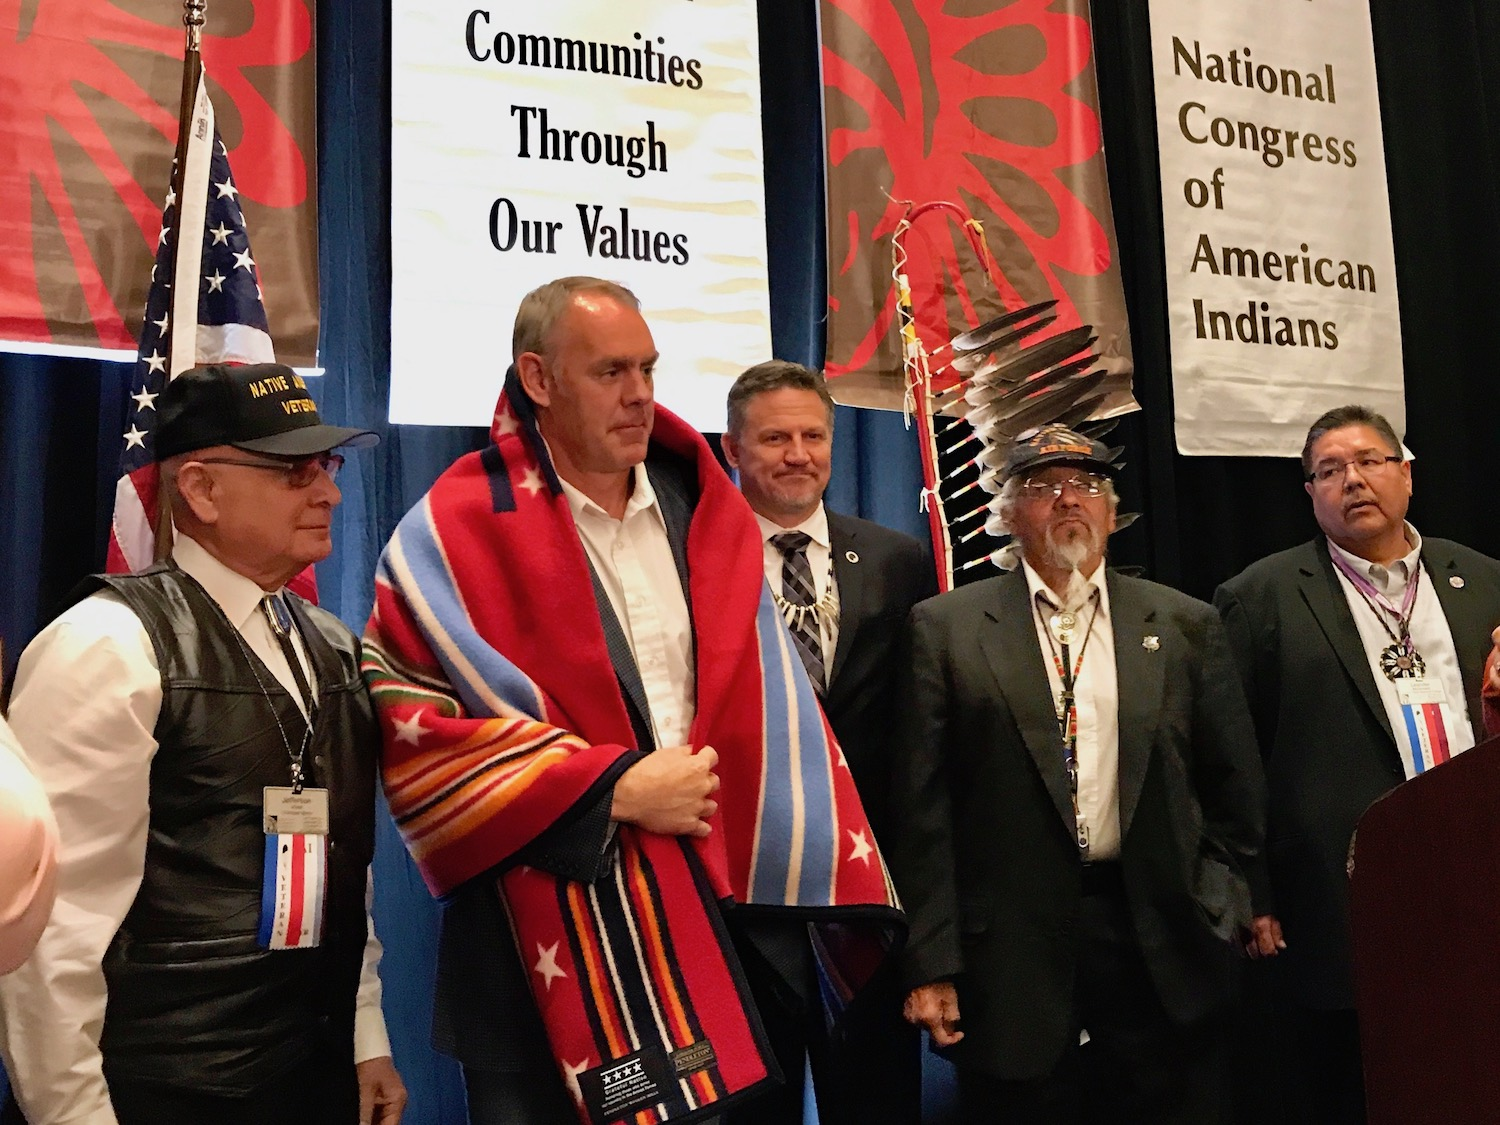 'There was no substance': Ryan Zinke claims exoneration in Indian gaming scandal